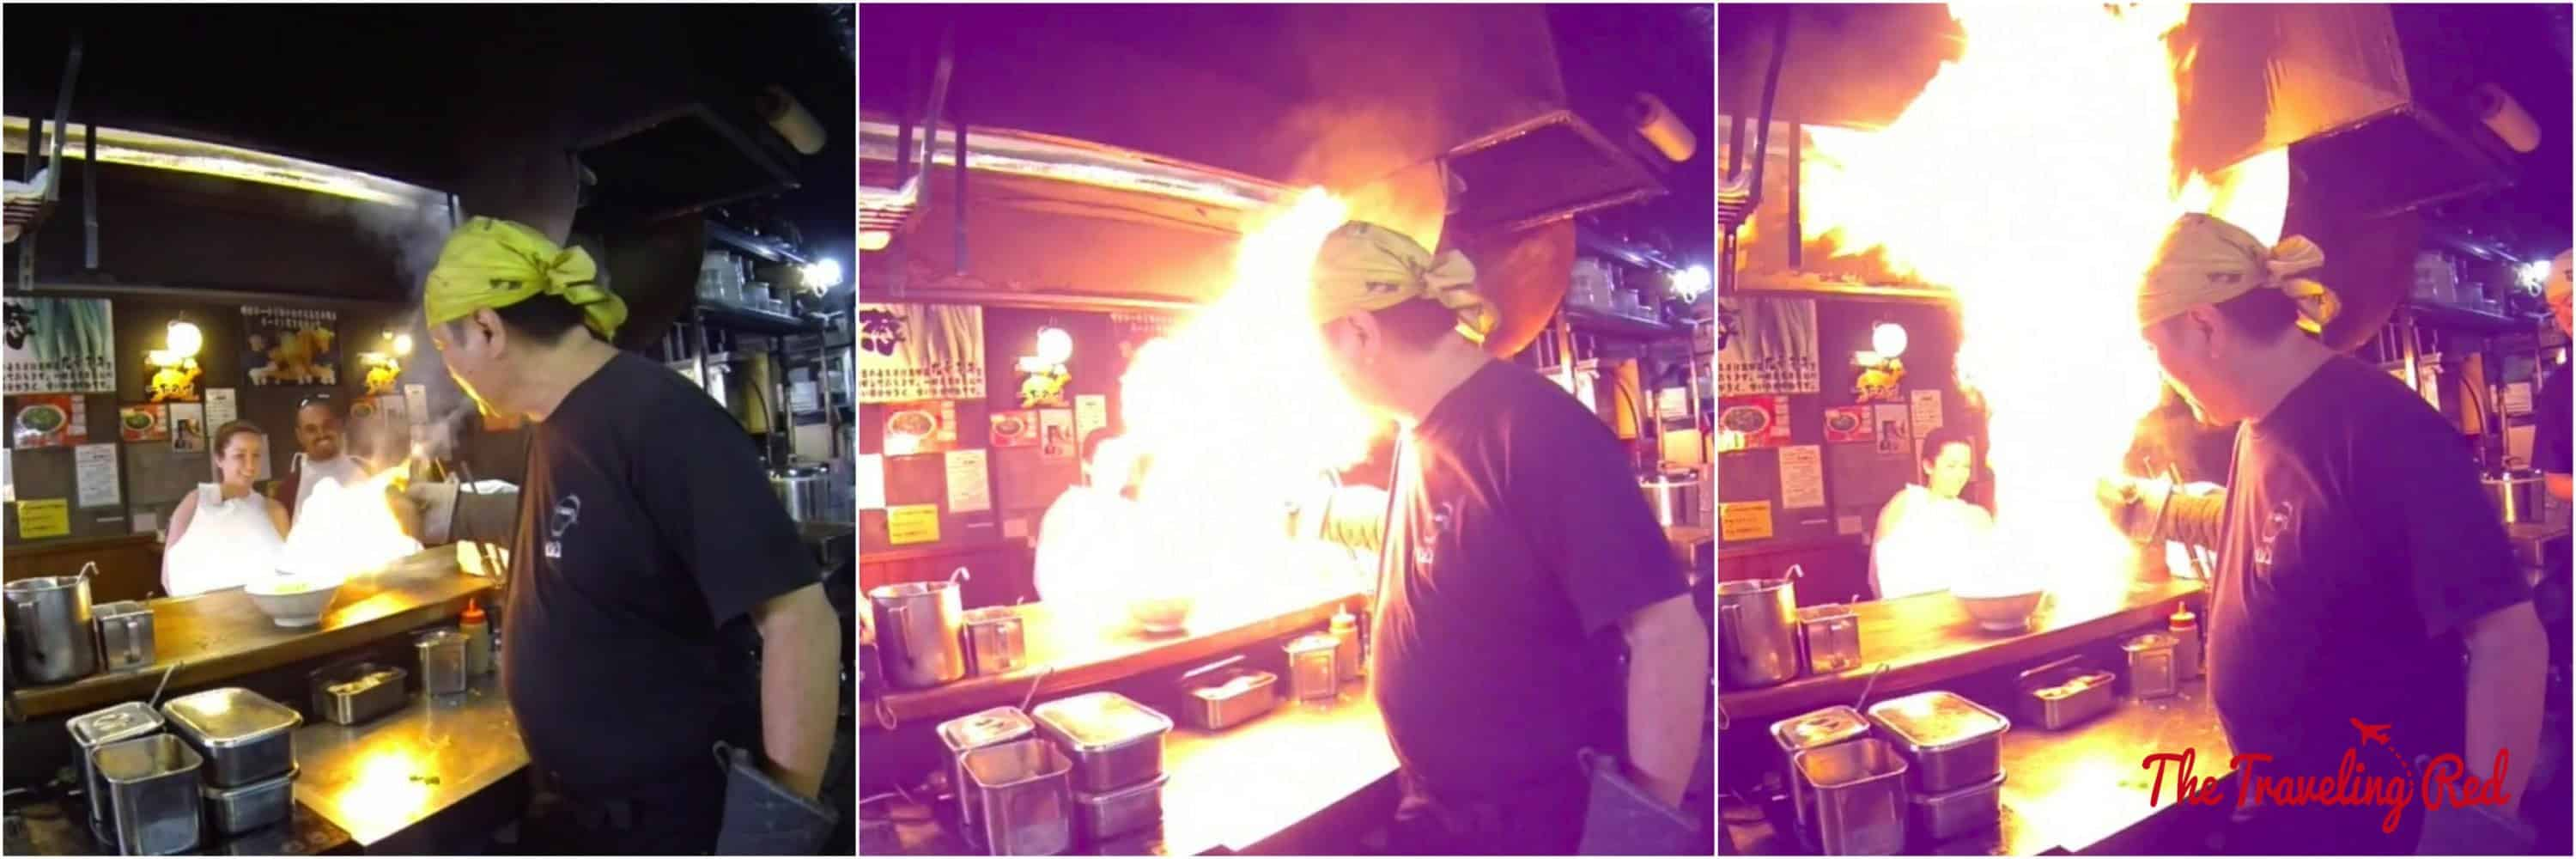 Japan is known for Ramen, in Kyoto check out Menbakaichidai for their famous fire ramen. They literally set your bowl of ramen on fire.